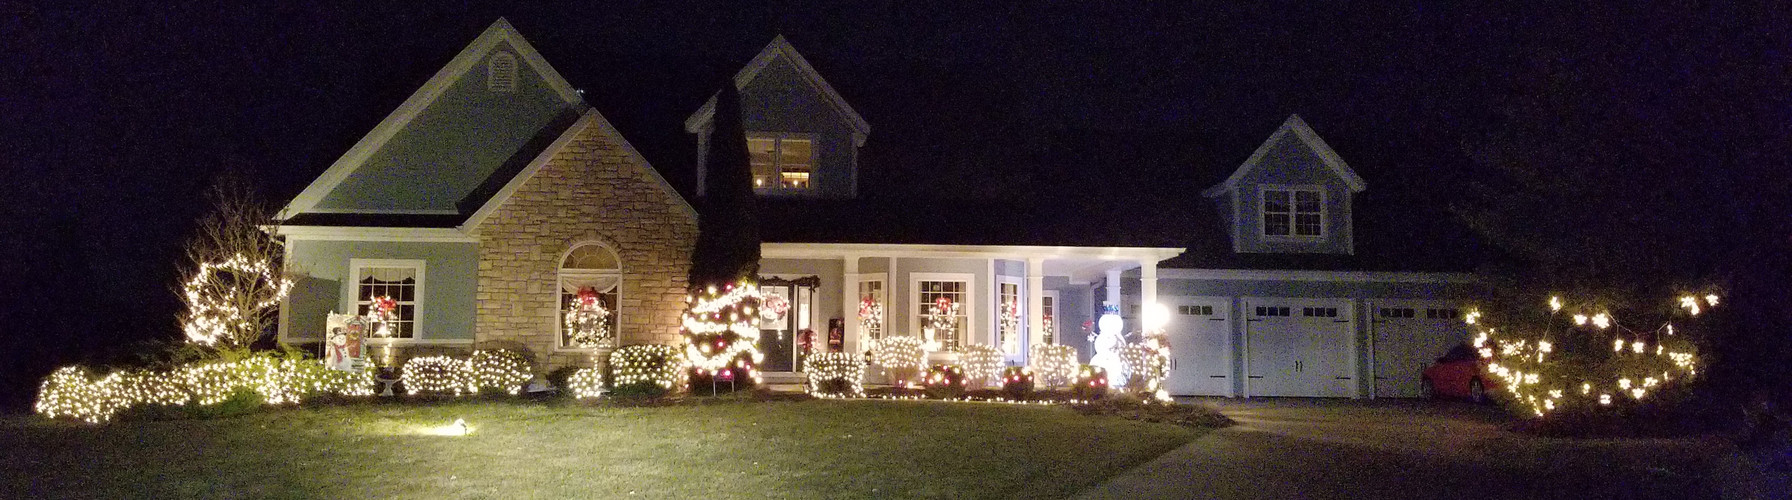 Deck the House Winners Bonfiglio home.jp